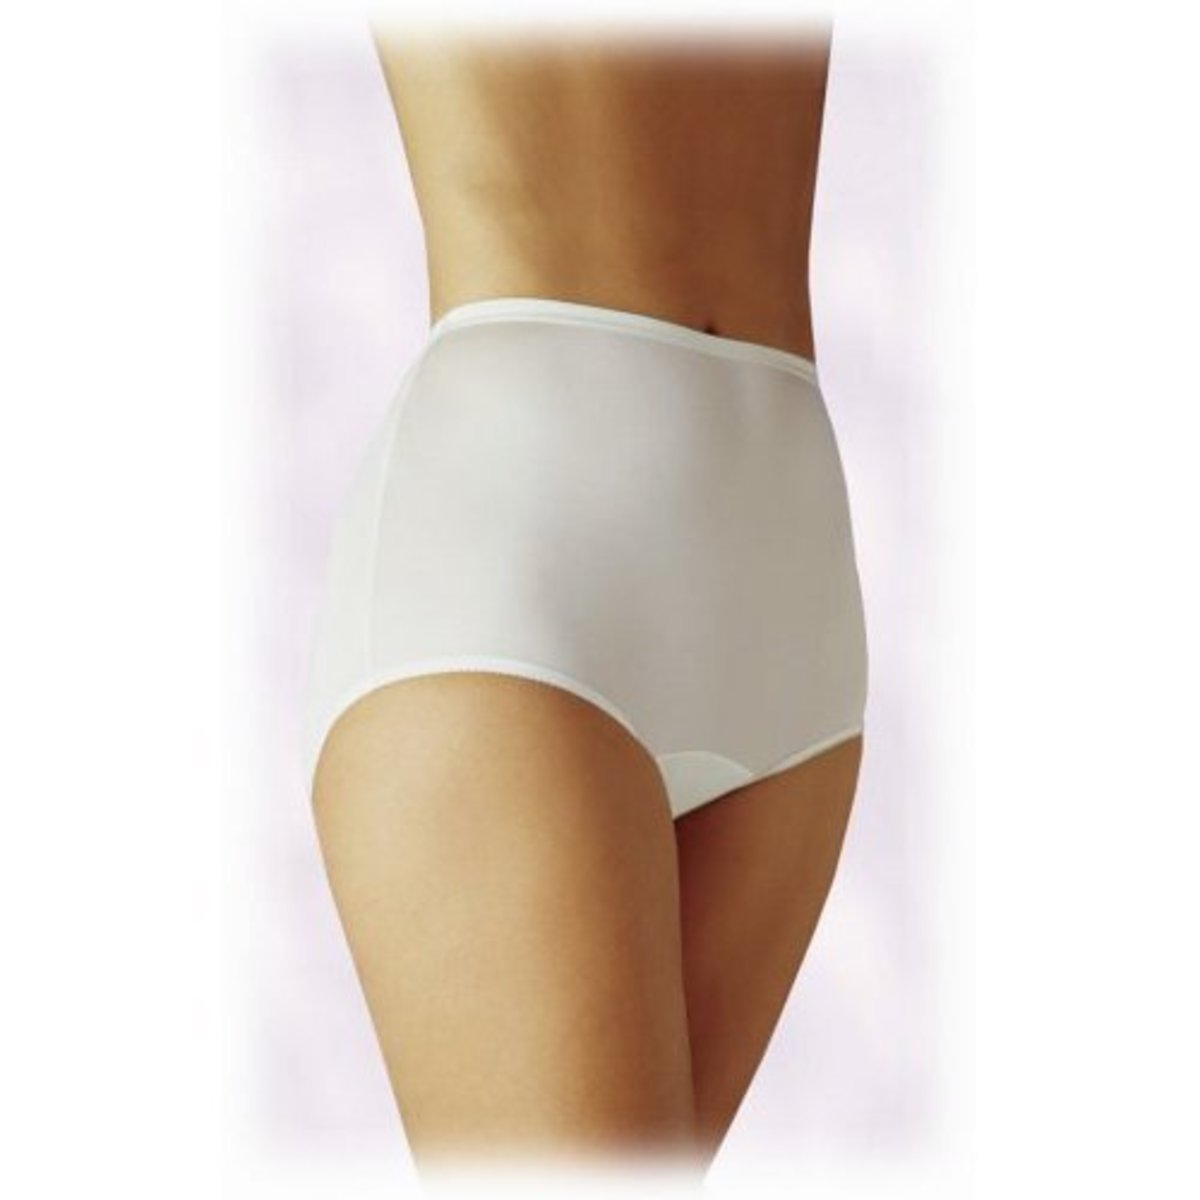 Feel Good Panties | Vanity Fair Nylon Panties For Men